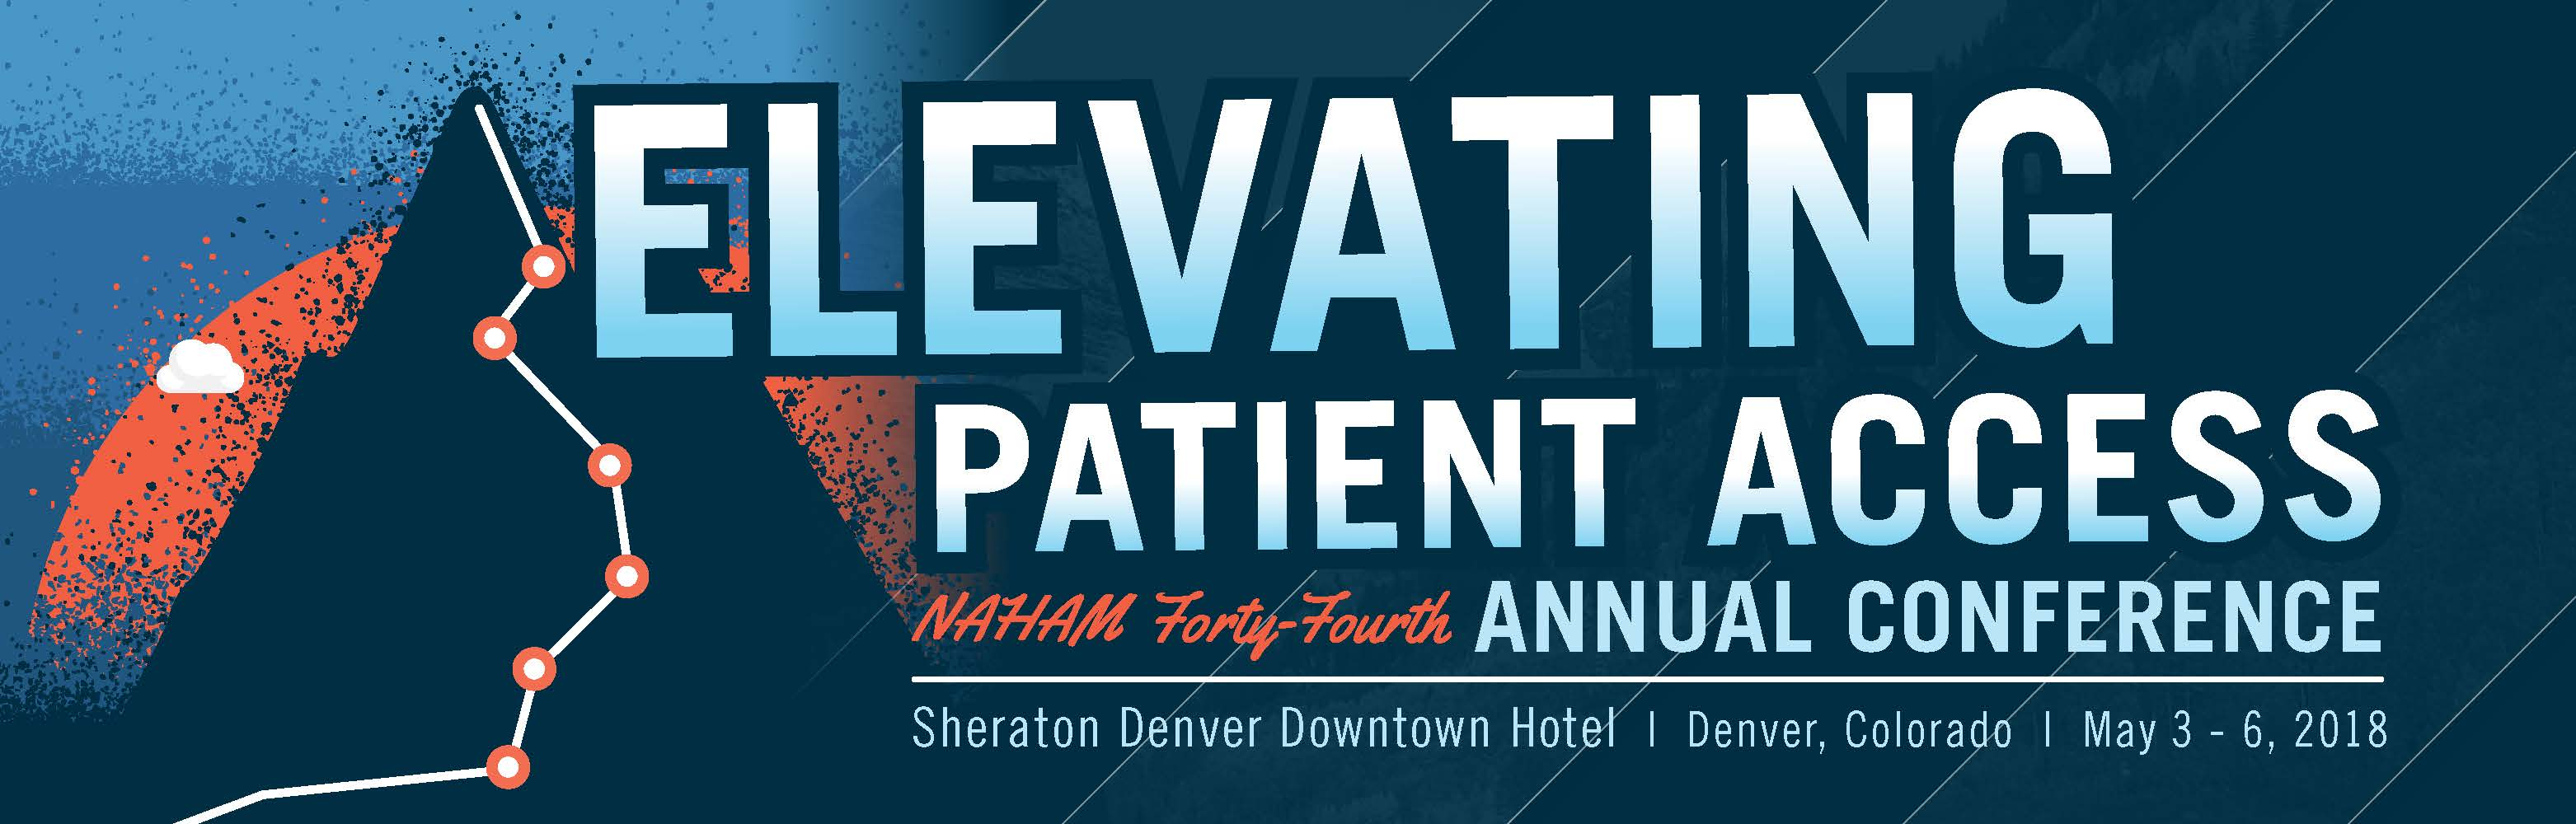 NAHAM 44th Annual Conference - National Association of Healthcare ...